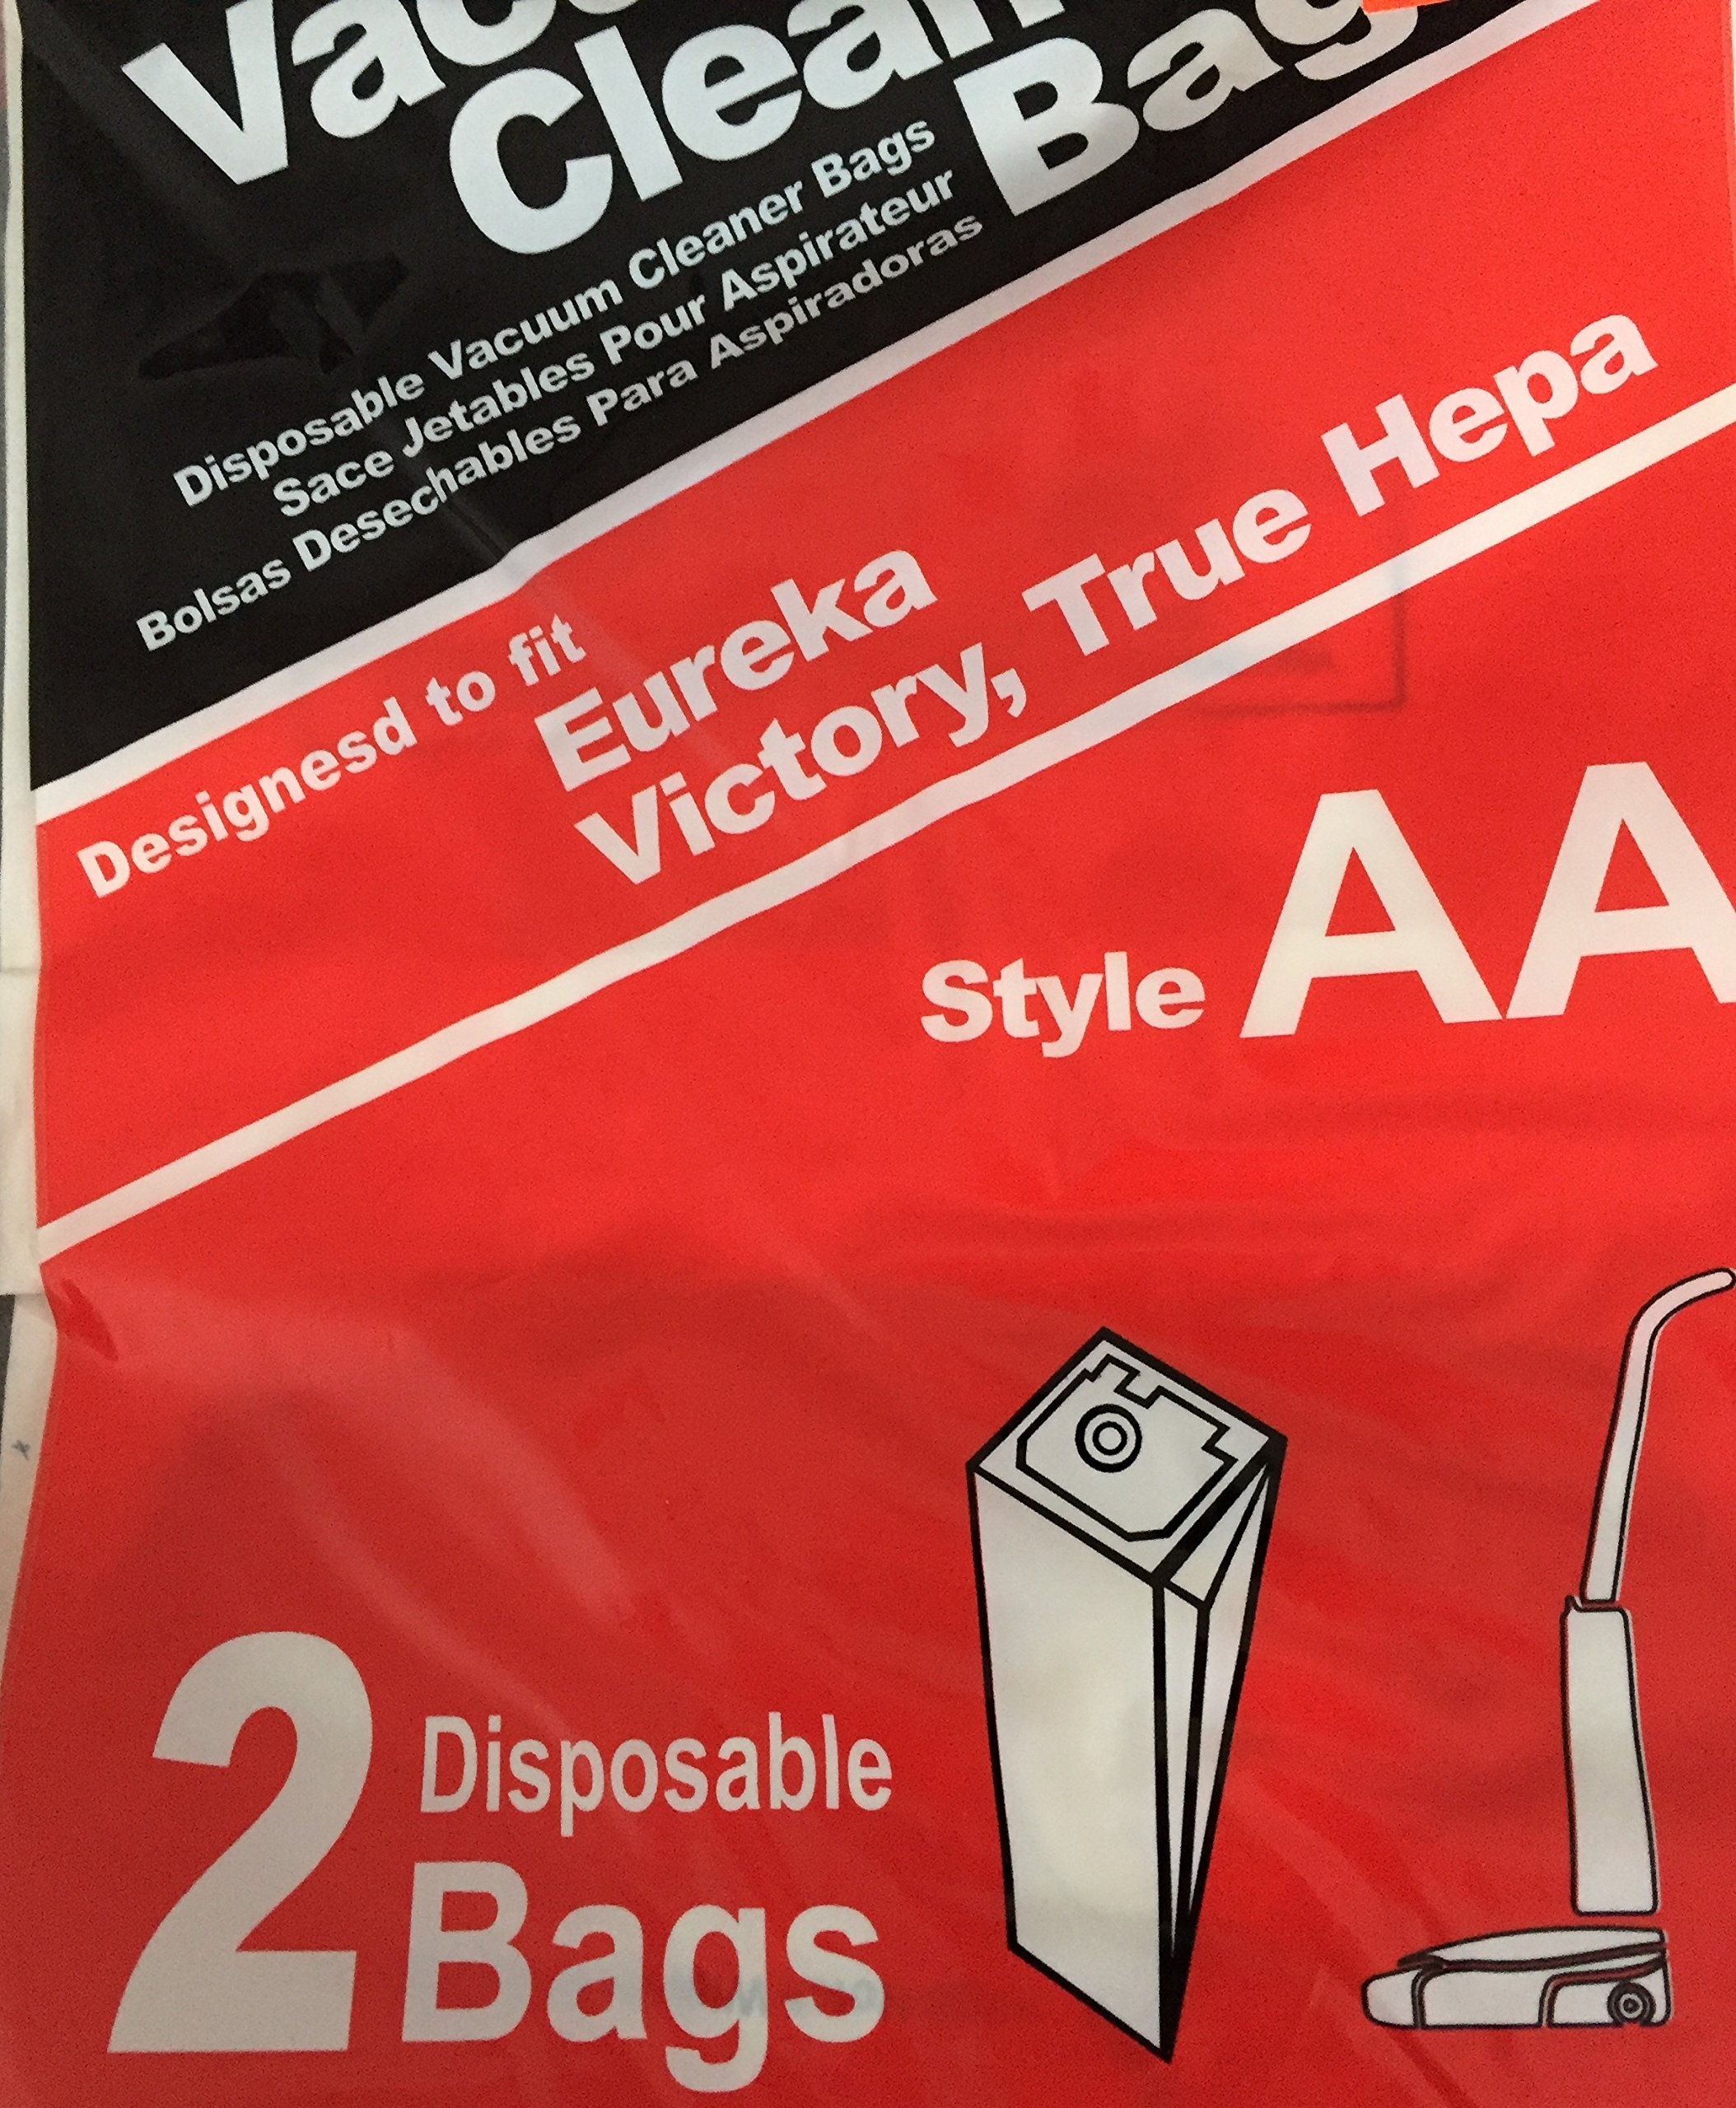 Vacuum Cleaner Bags Style AA - 2 Disposable Bags